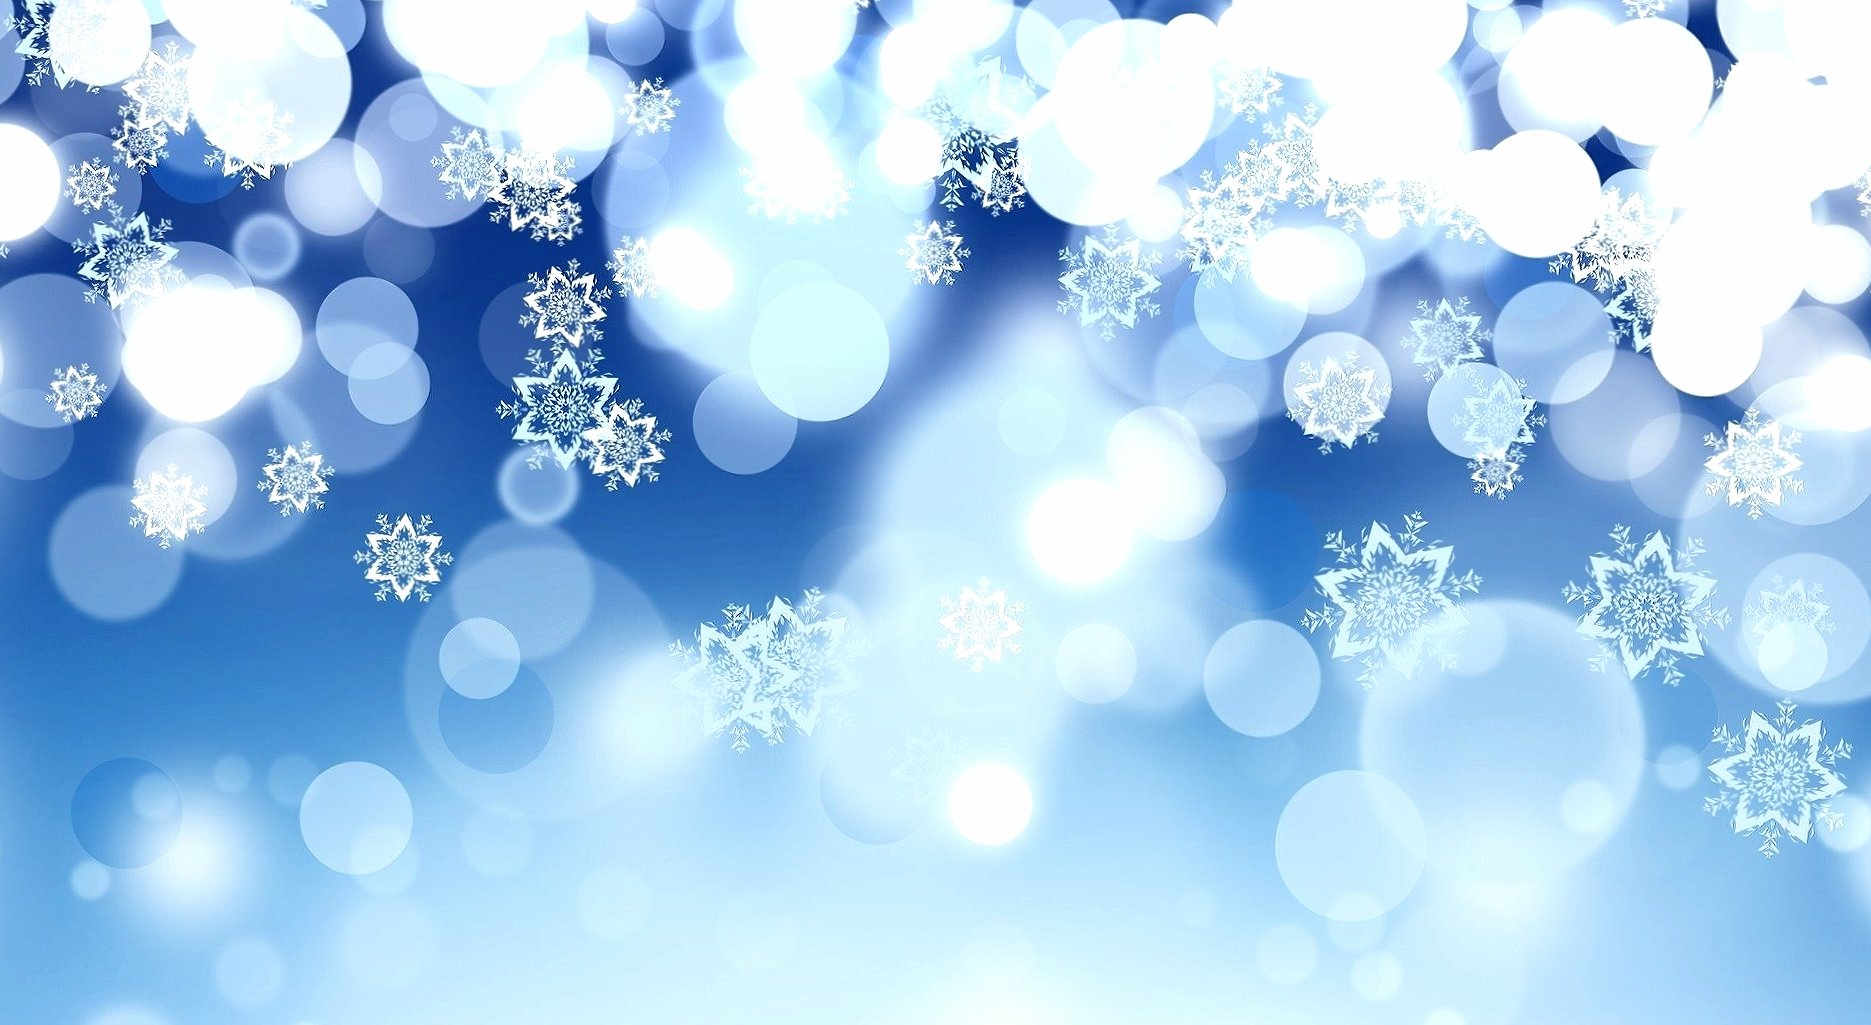 Snow wallpapers HD quality